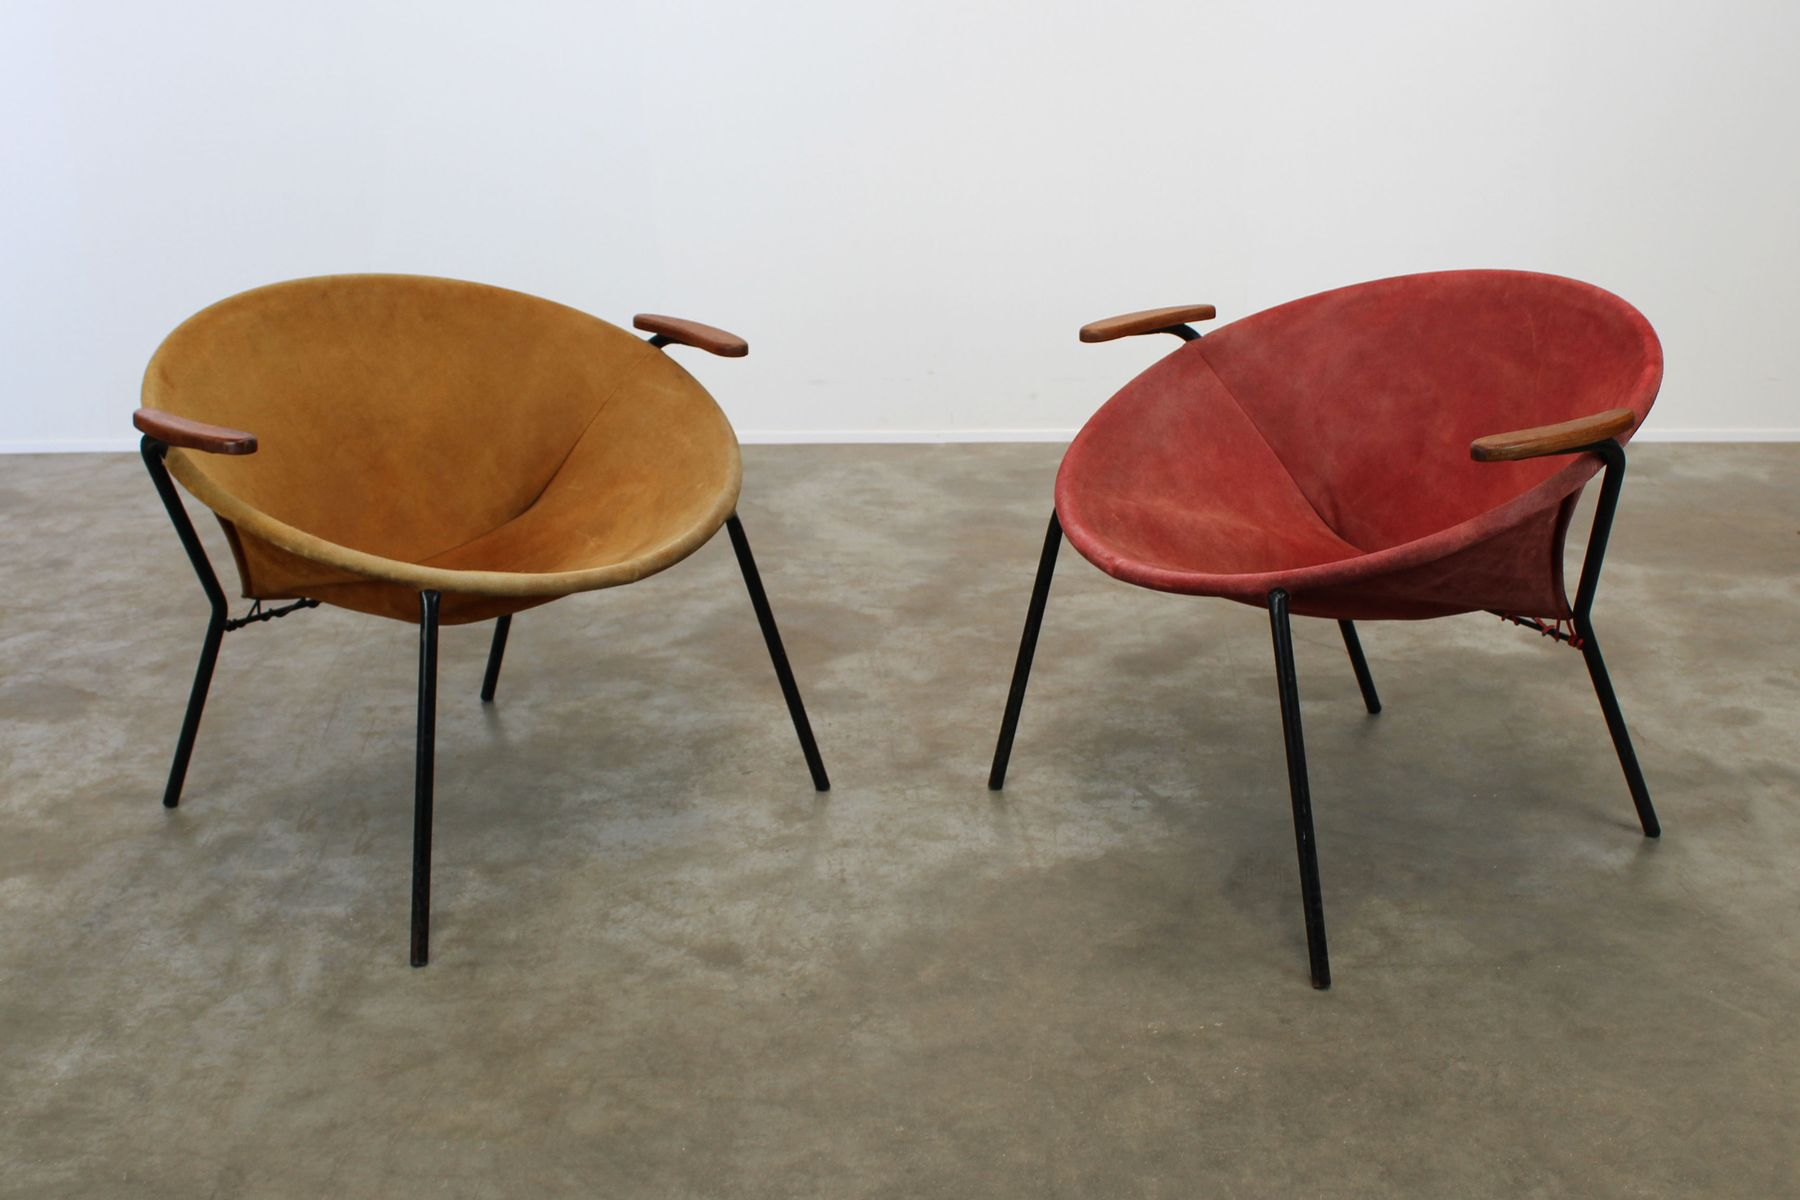 Vintage Colorful Balloon Lounge Chairs By Hans Olsen, Set Of 2